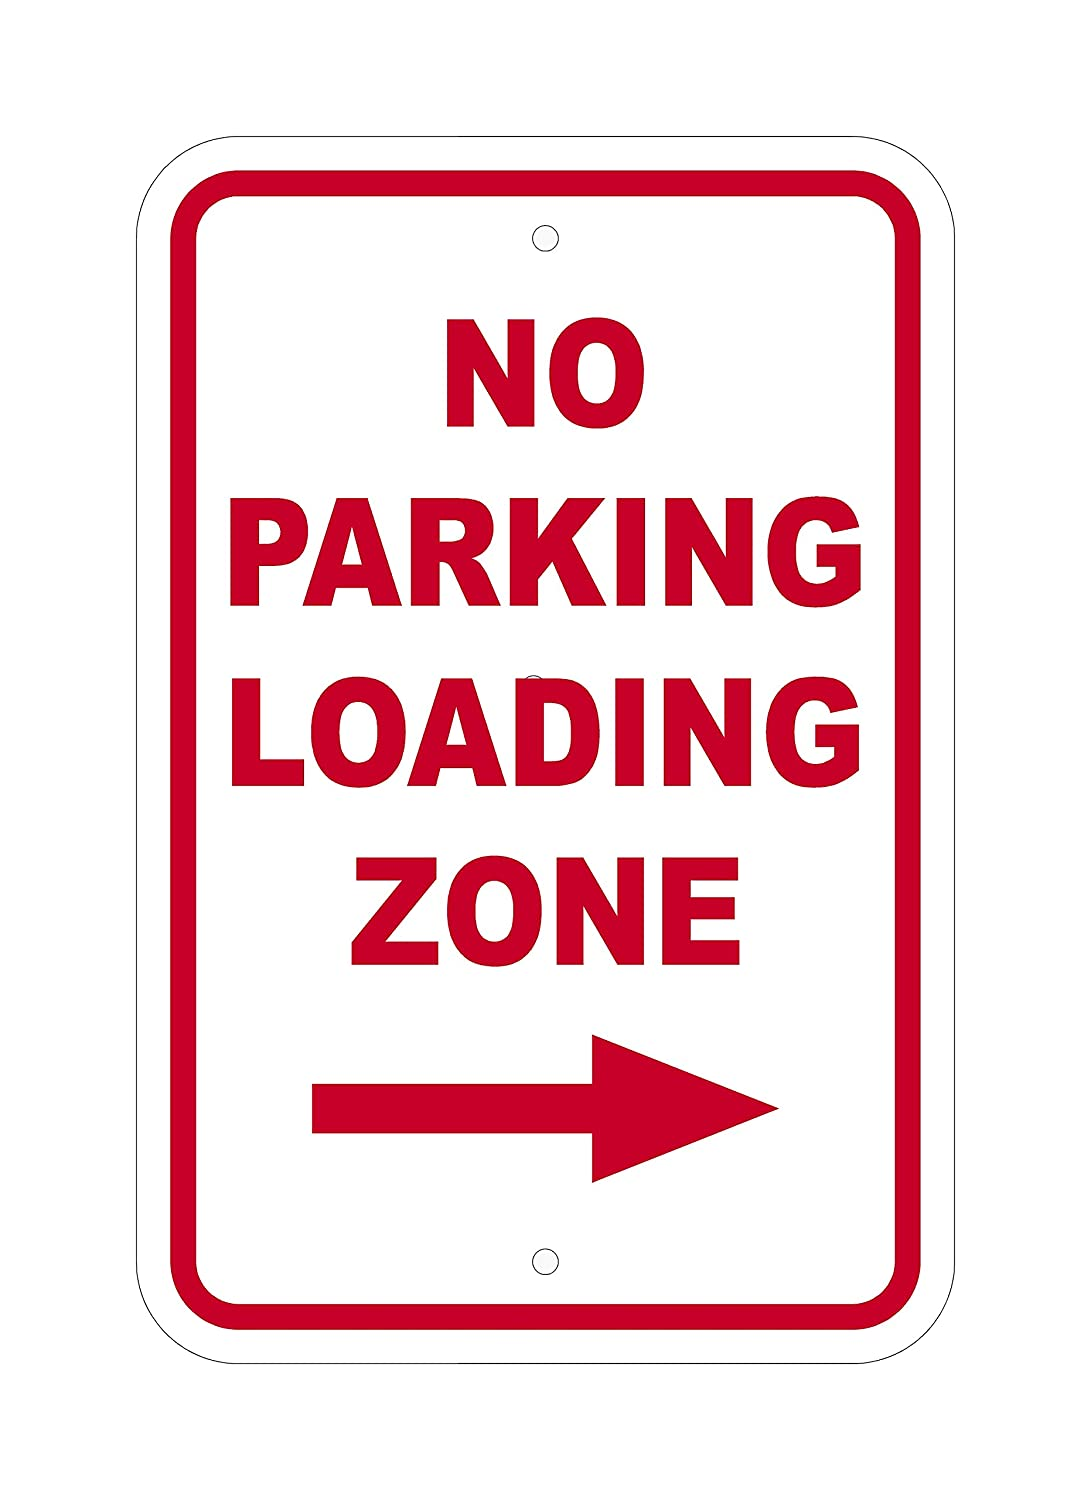 Supply360 FS1097 -NO Parking Loading Zone - with Right Arrow - 12 (W) x 18 (H) Heavy Gauge Aluminum Outdoor Sign, Non-Reflective, Made in The USA